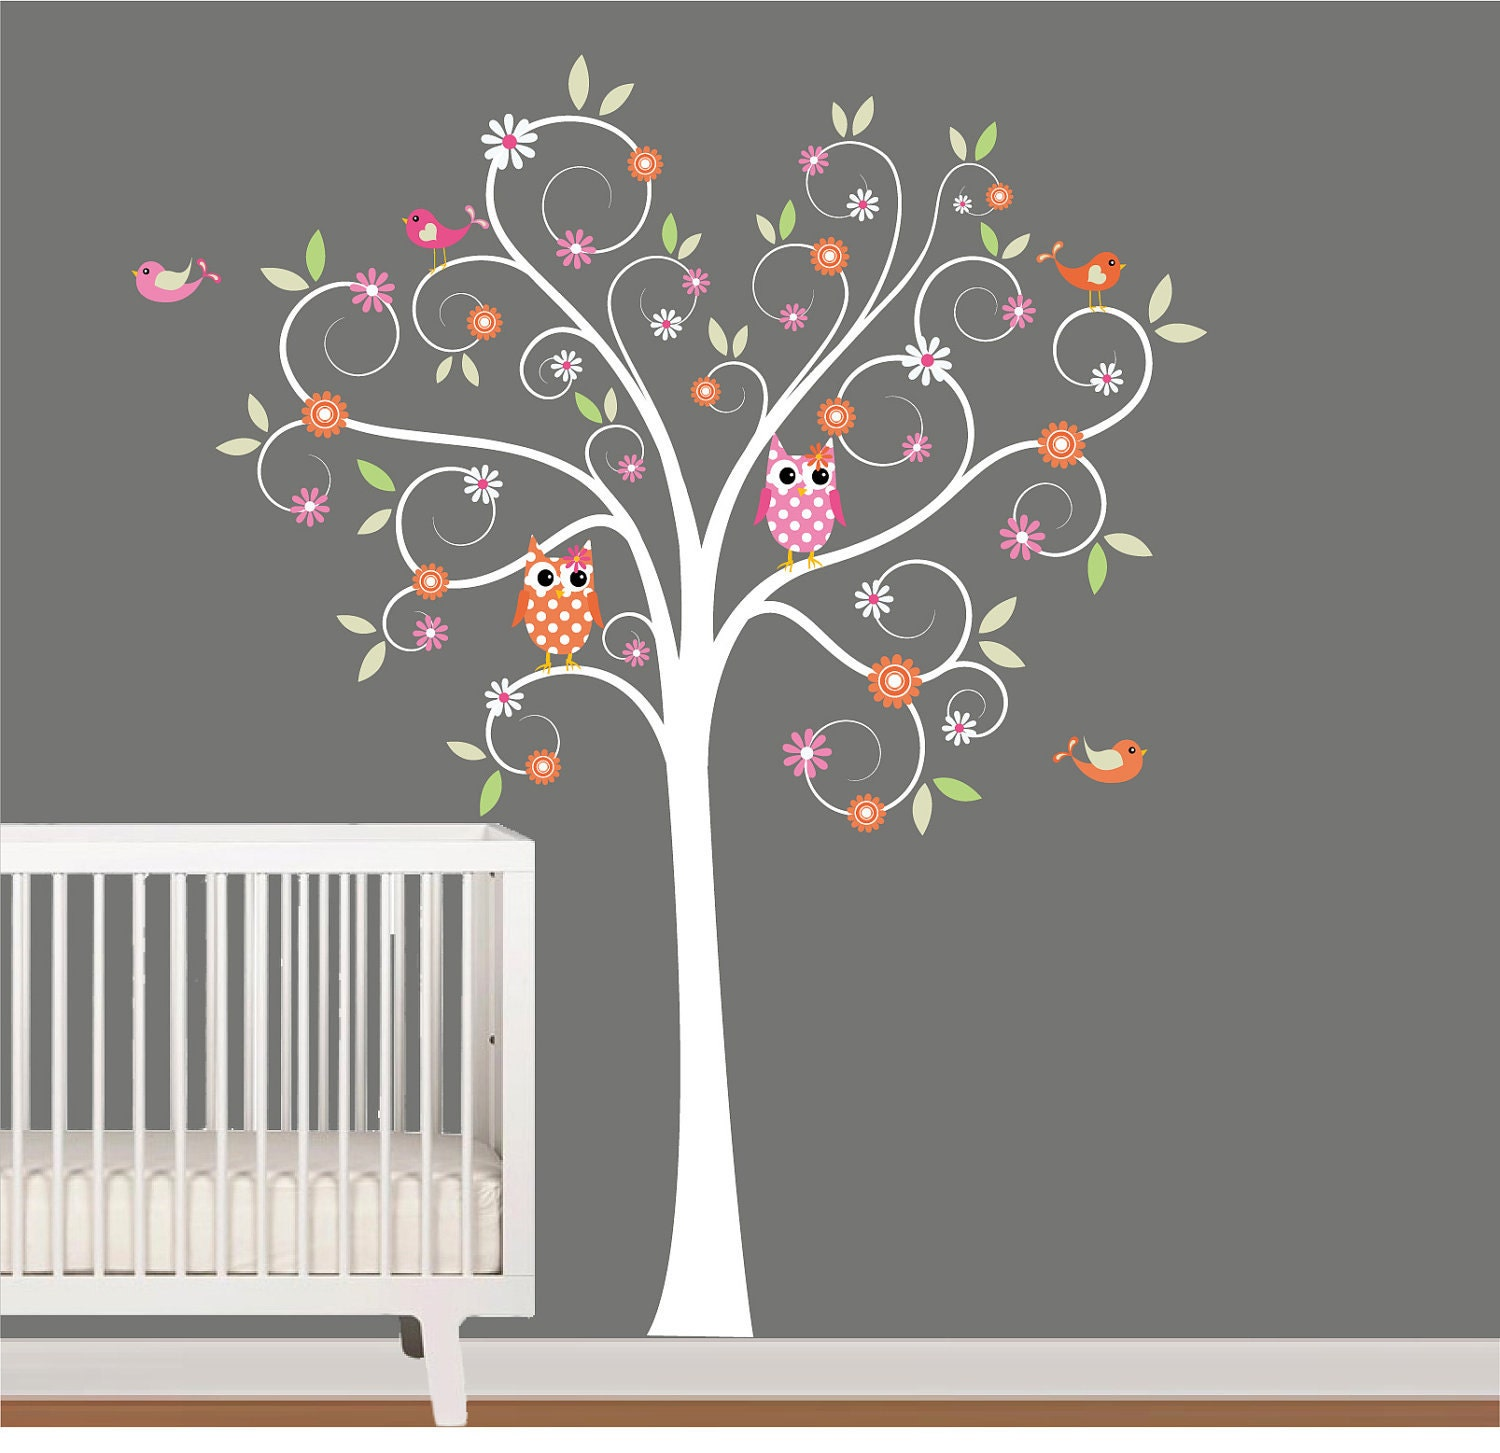 Wall Art Decals For Nursery : Kids wall decals nursery tree decal with flowers by